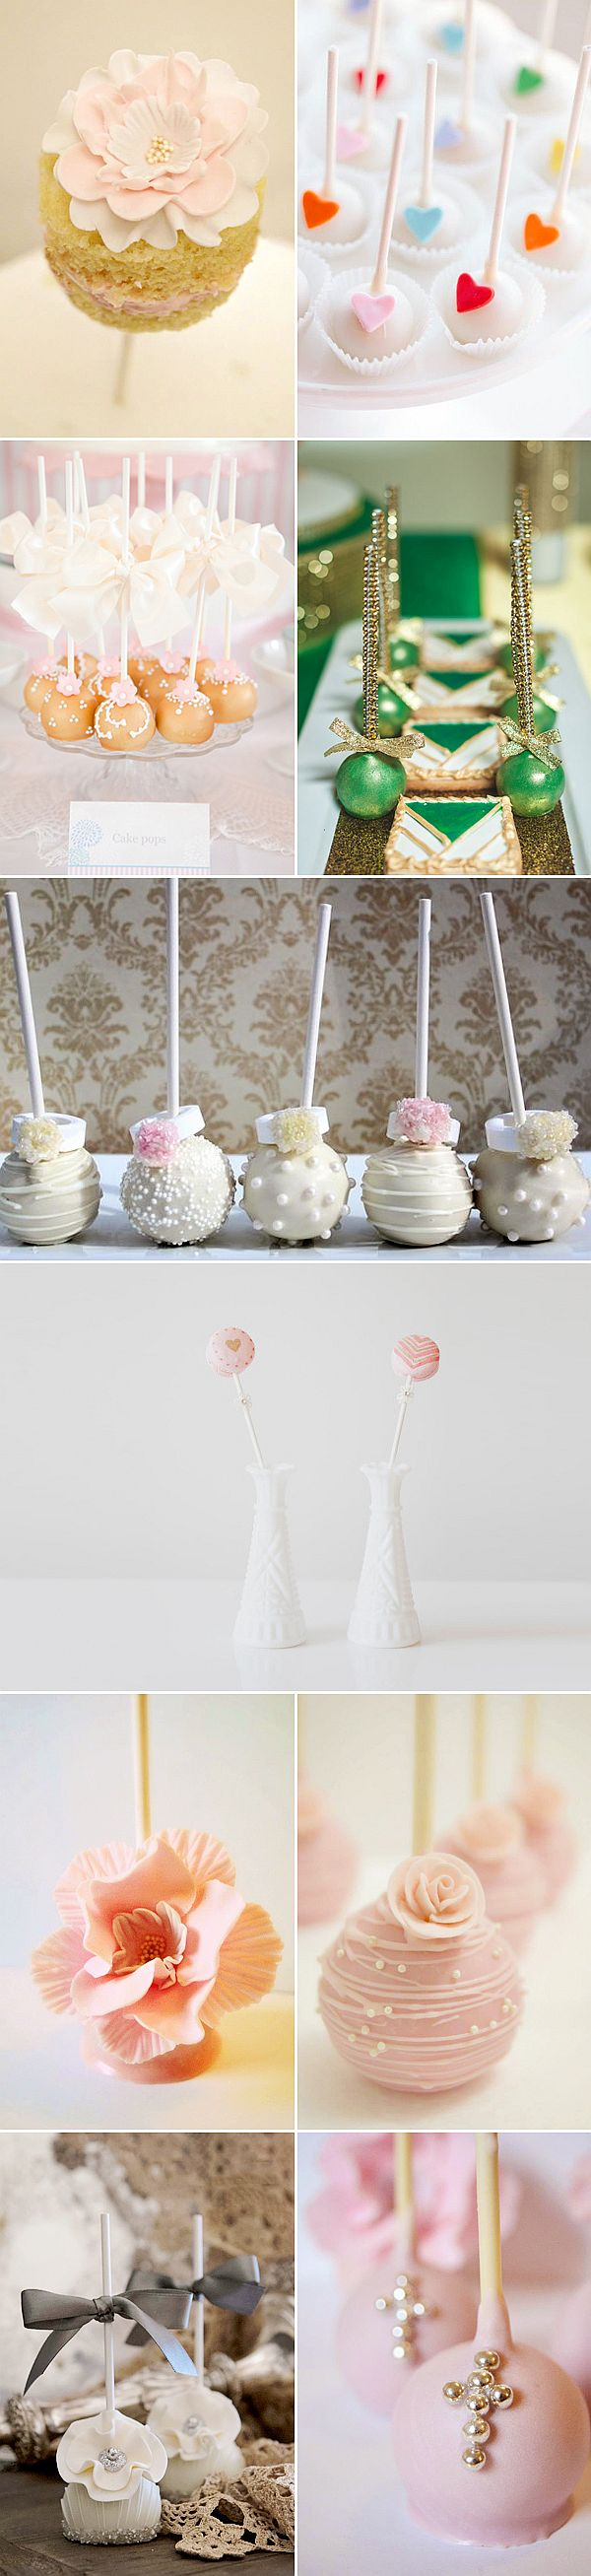 Awesome cakepops for a great birthday party